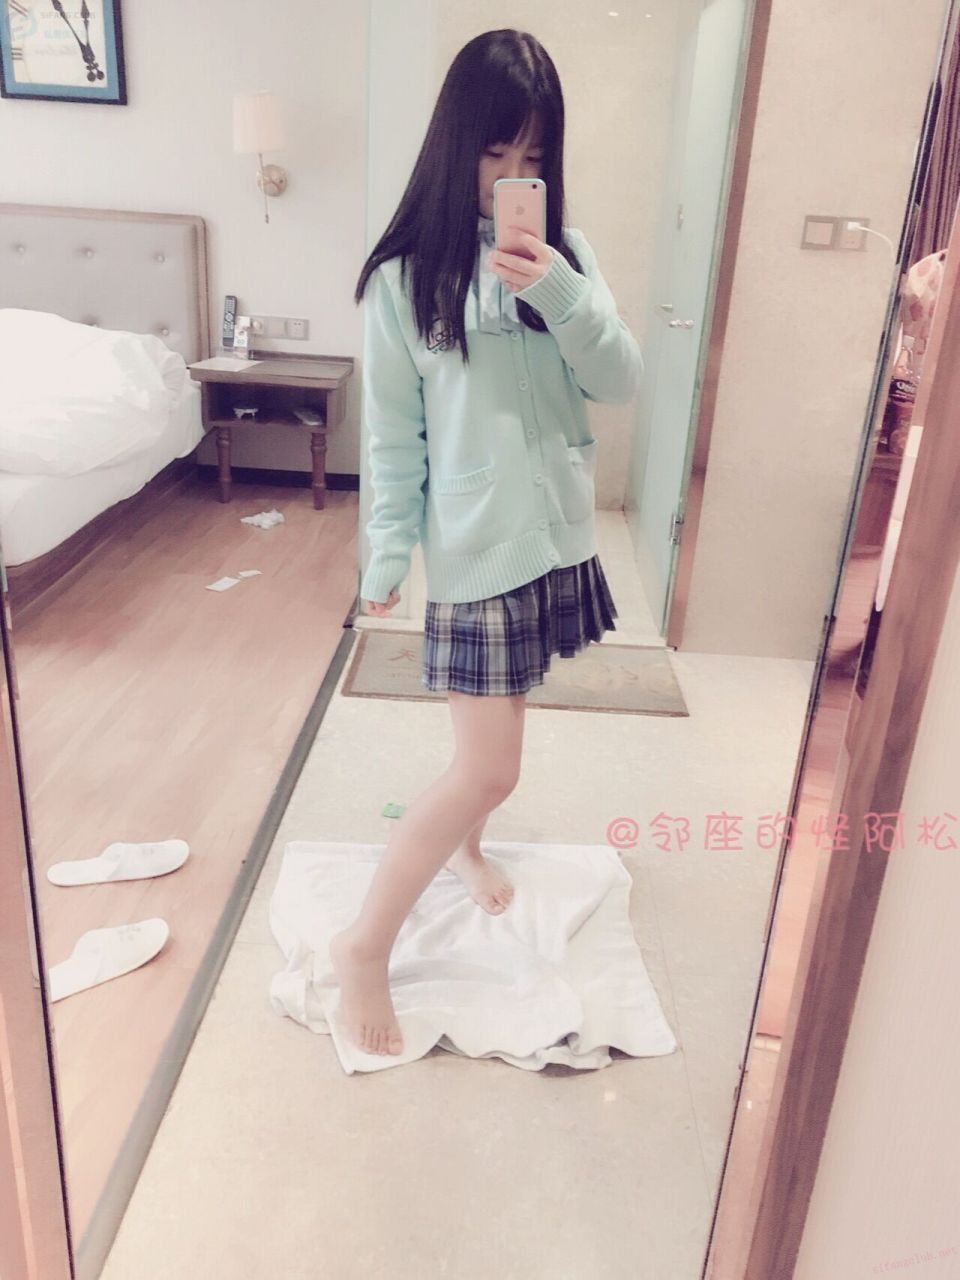 The Lolita Girl in the School Uniform of the Strange Asongsong Jam Next to the Seat (26P)